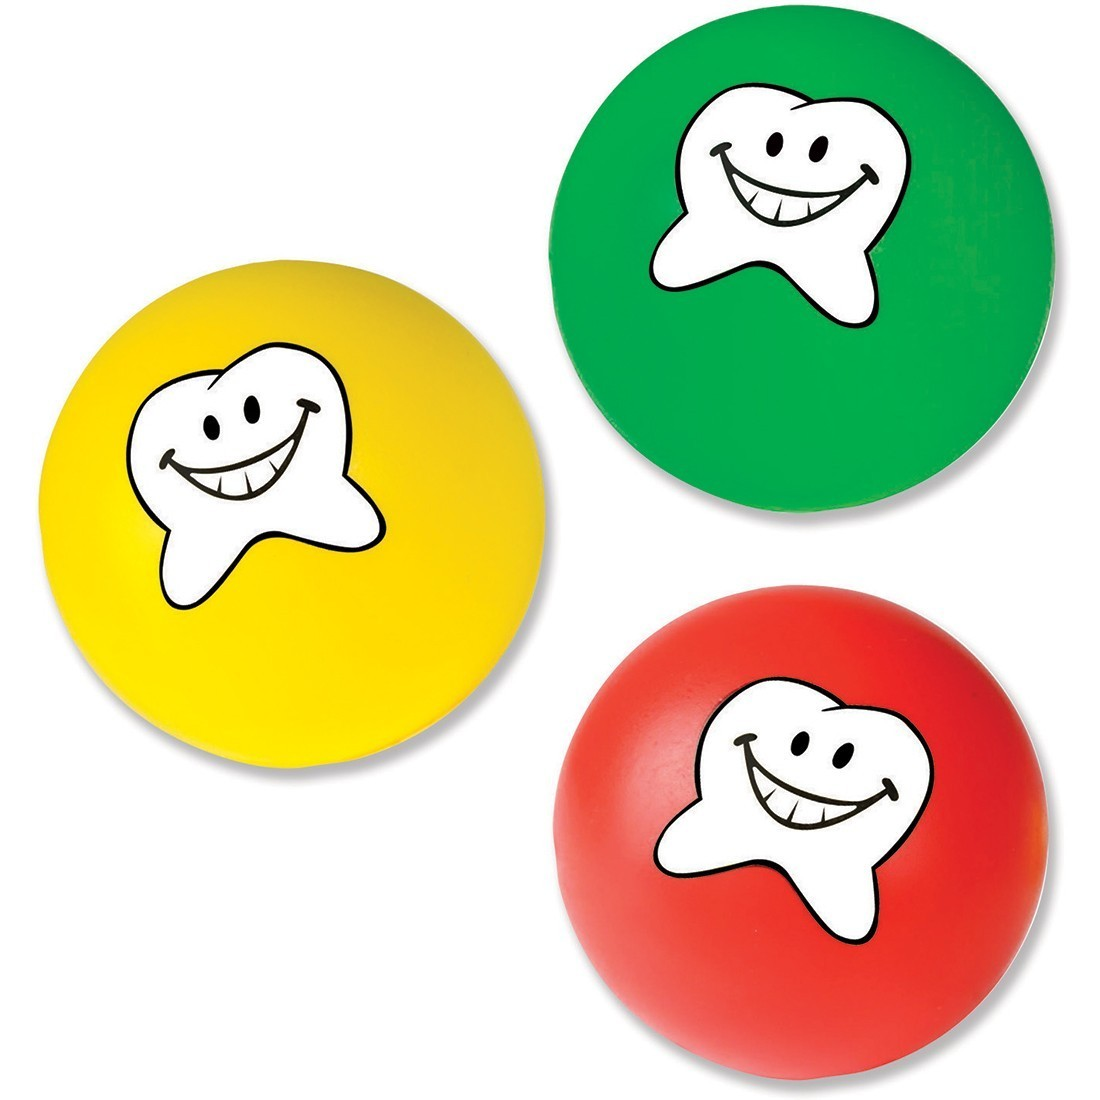 Happy Tooth Stress Balls [image]